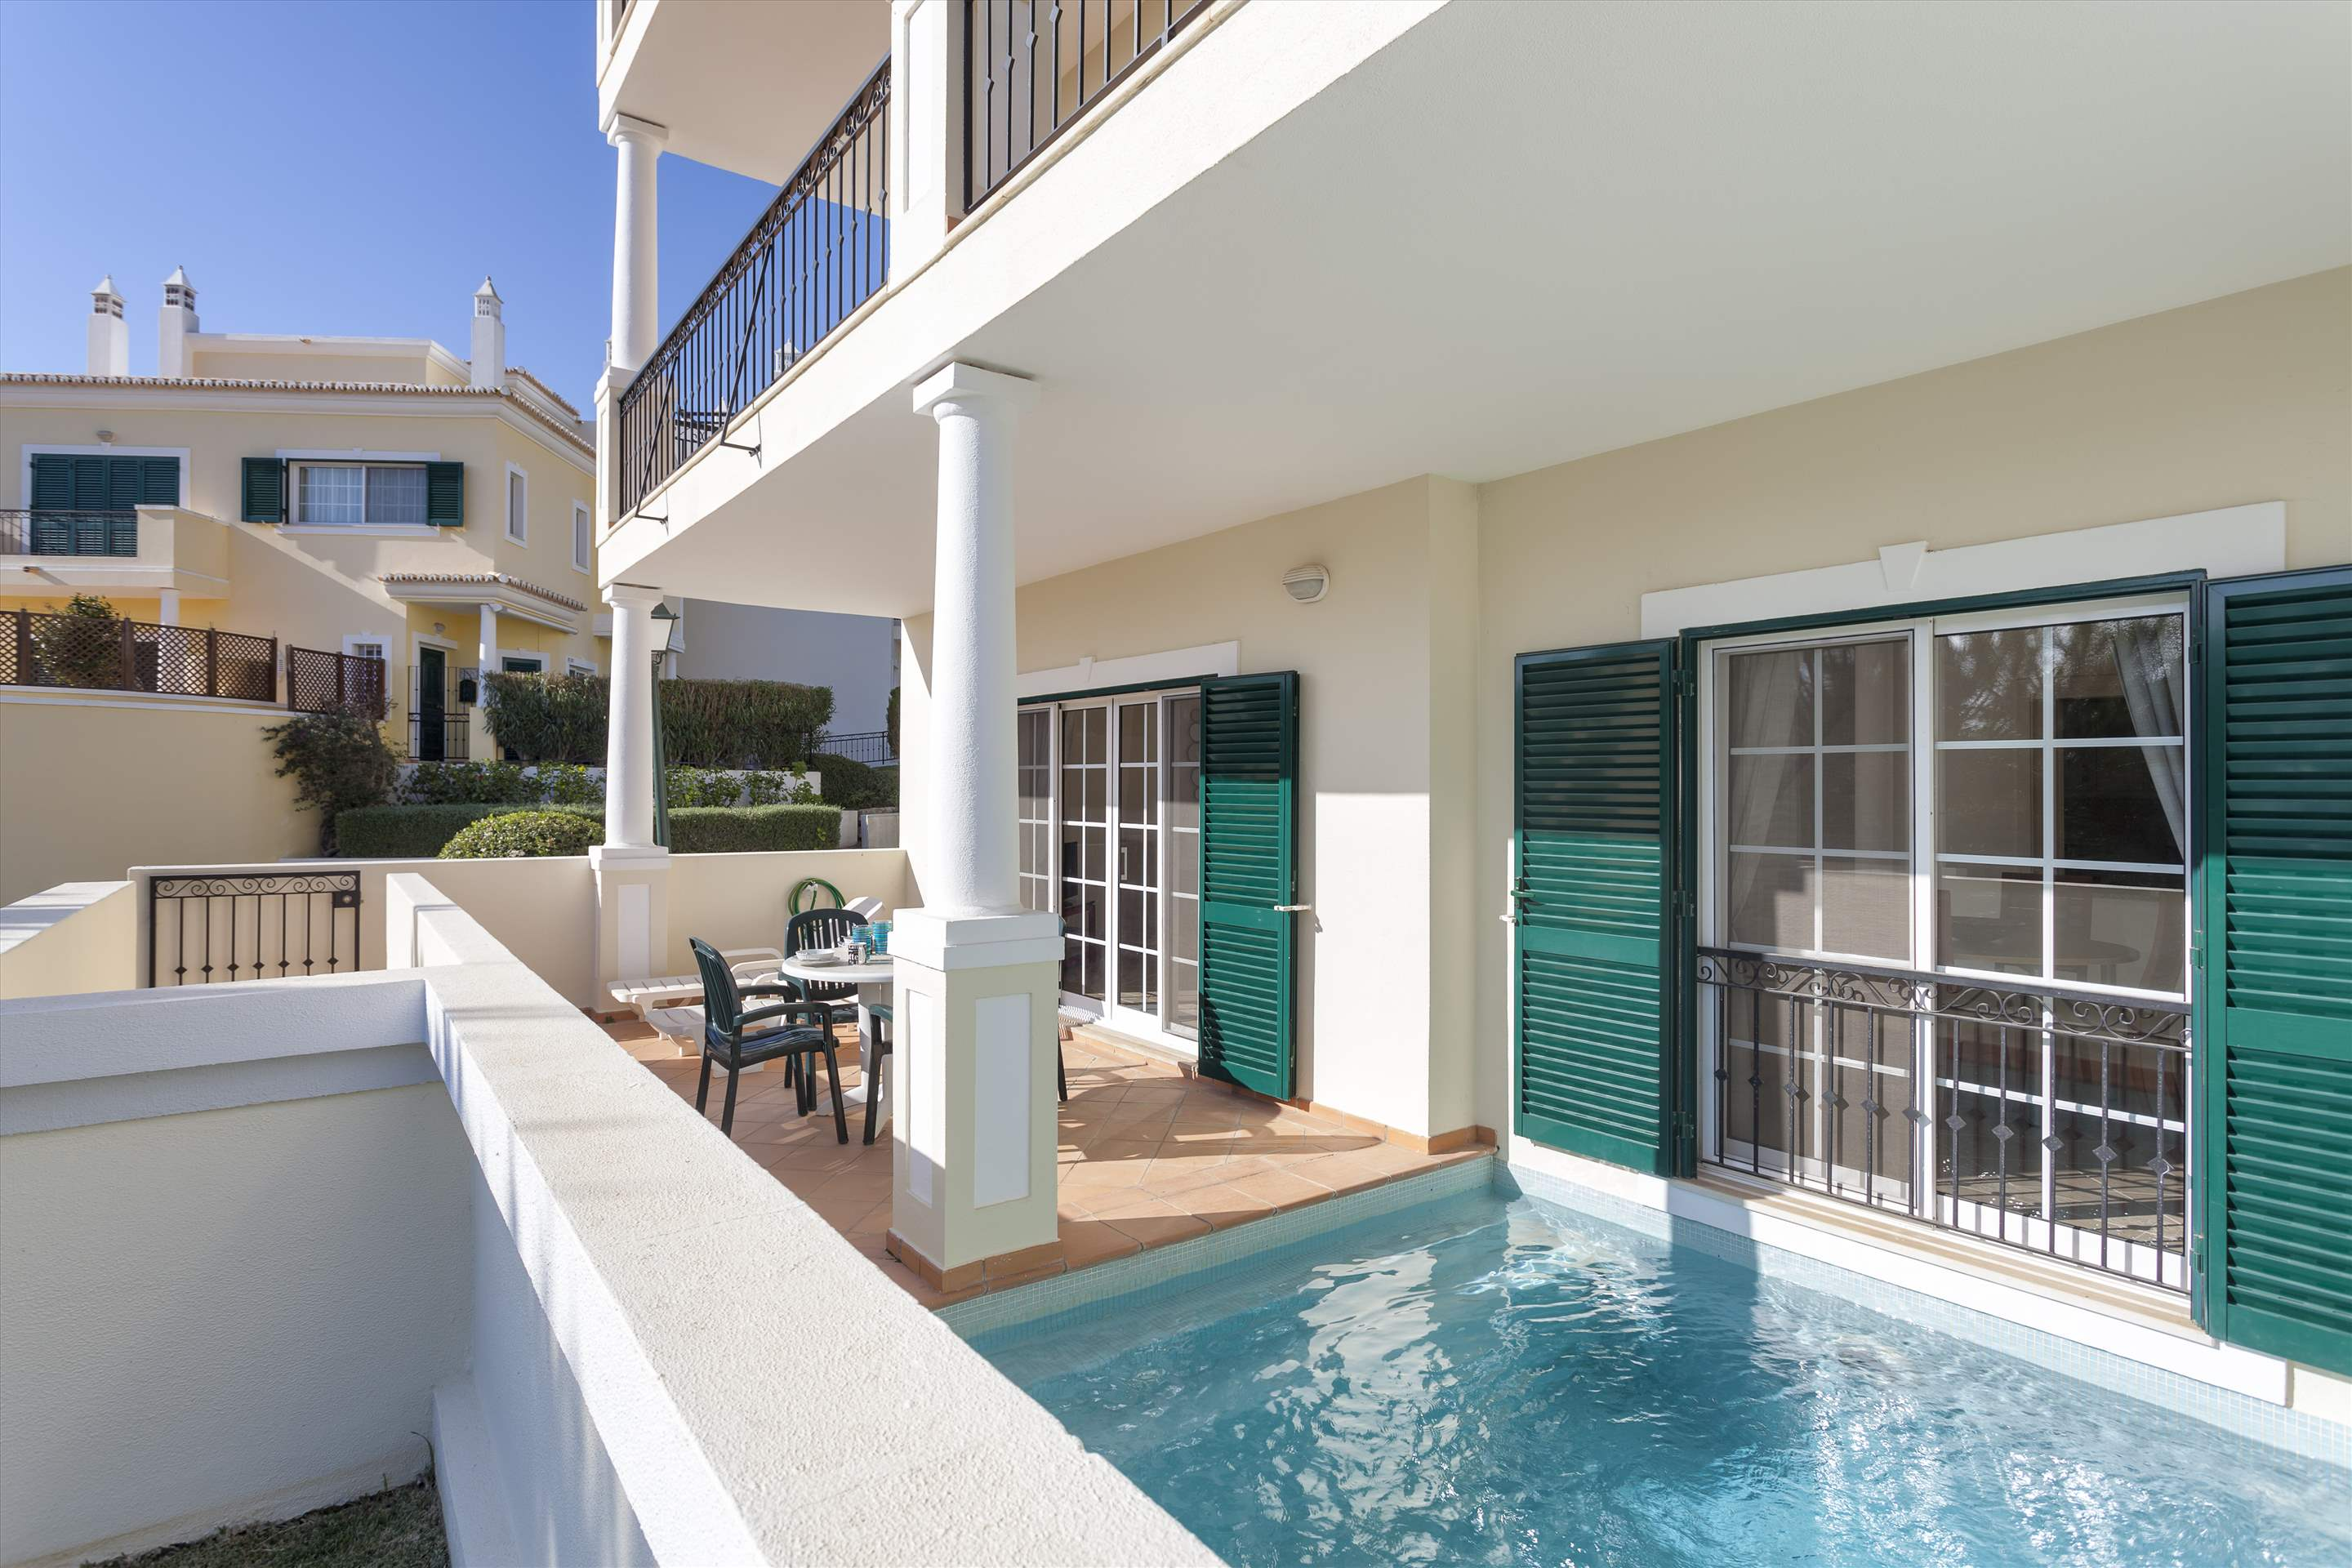 Apartment Dorothea, 1 bedroom apartment in Vale do Lobo, Algarve Photo #1